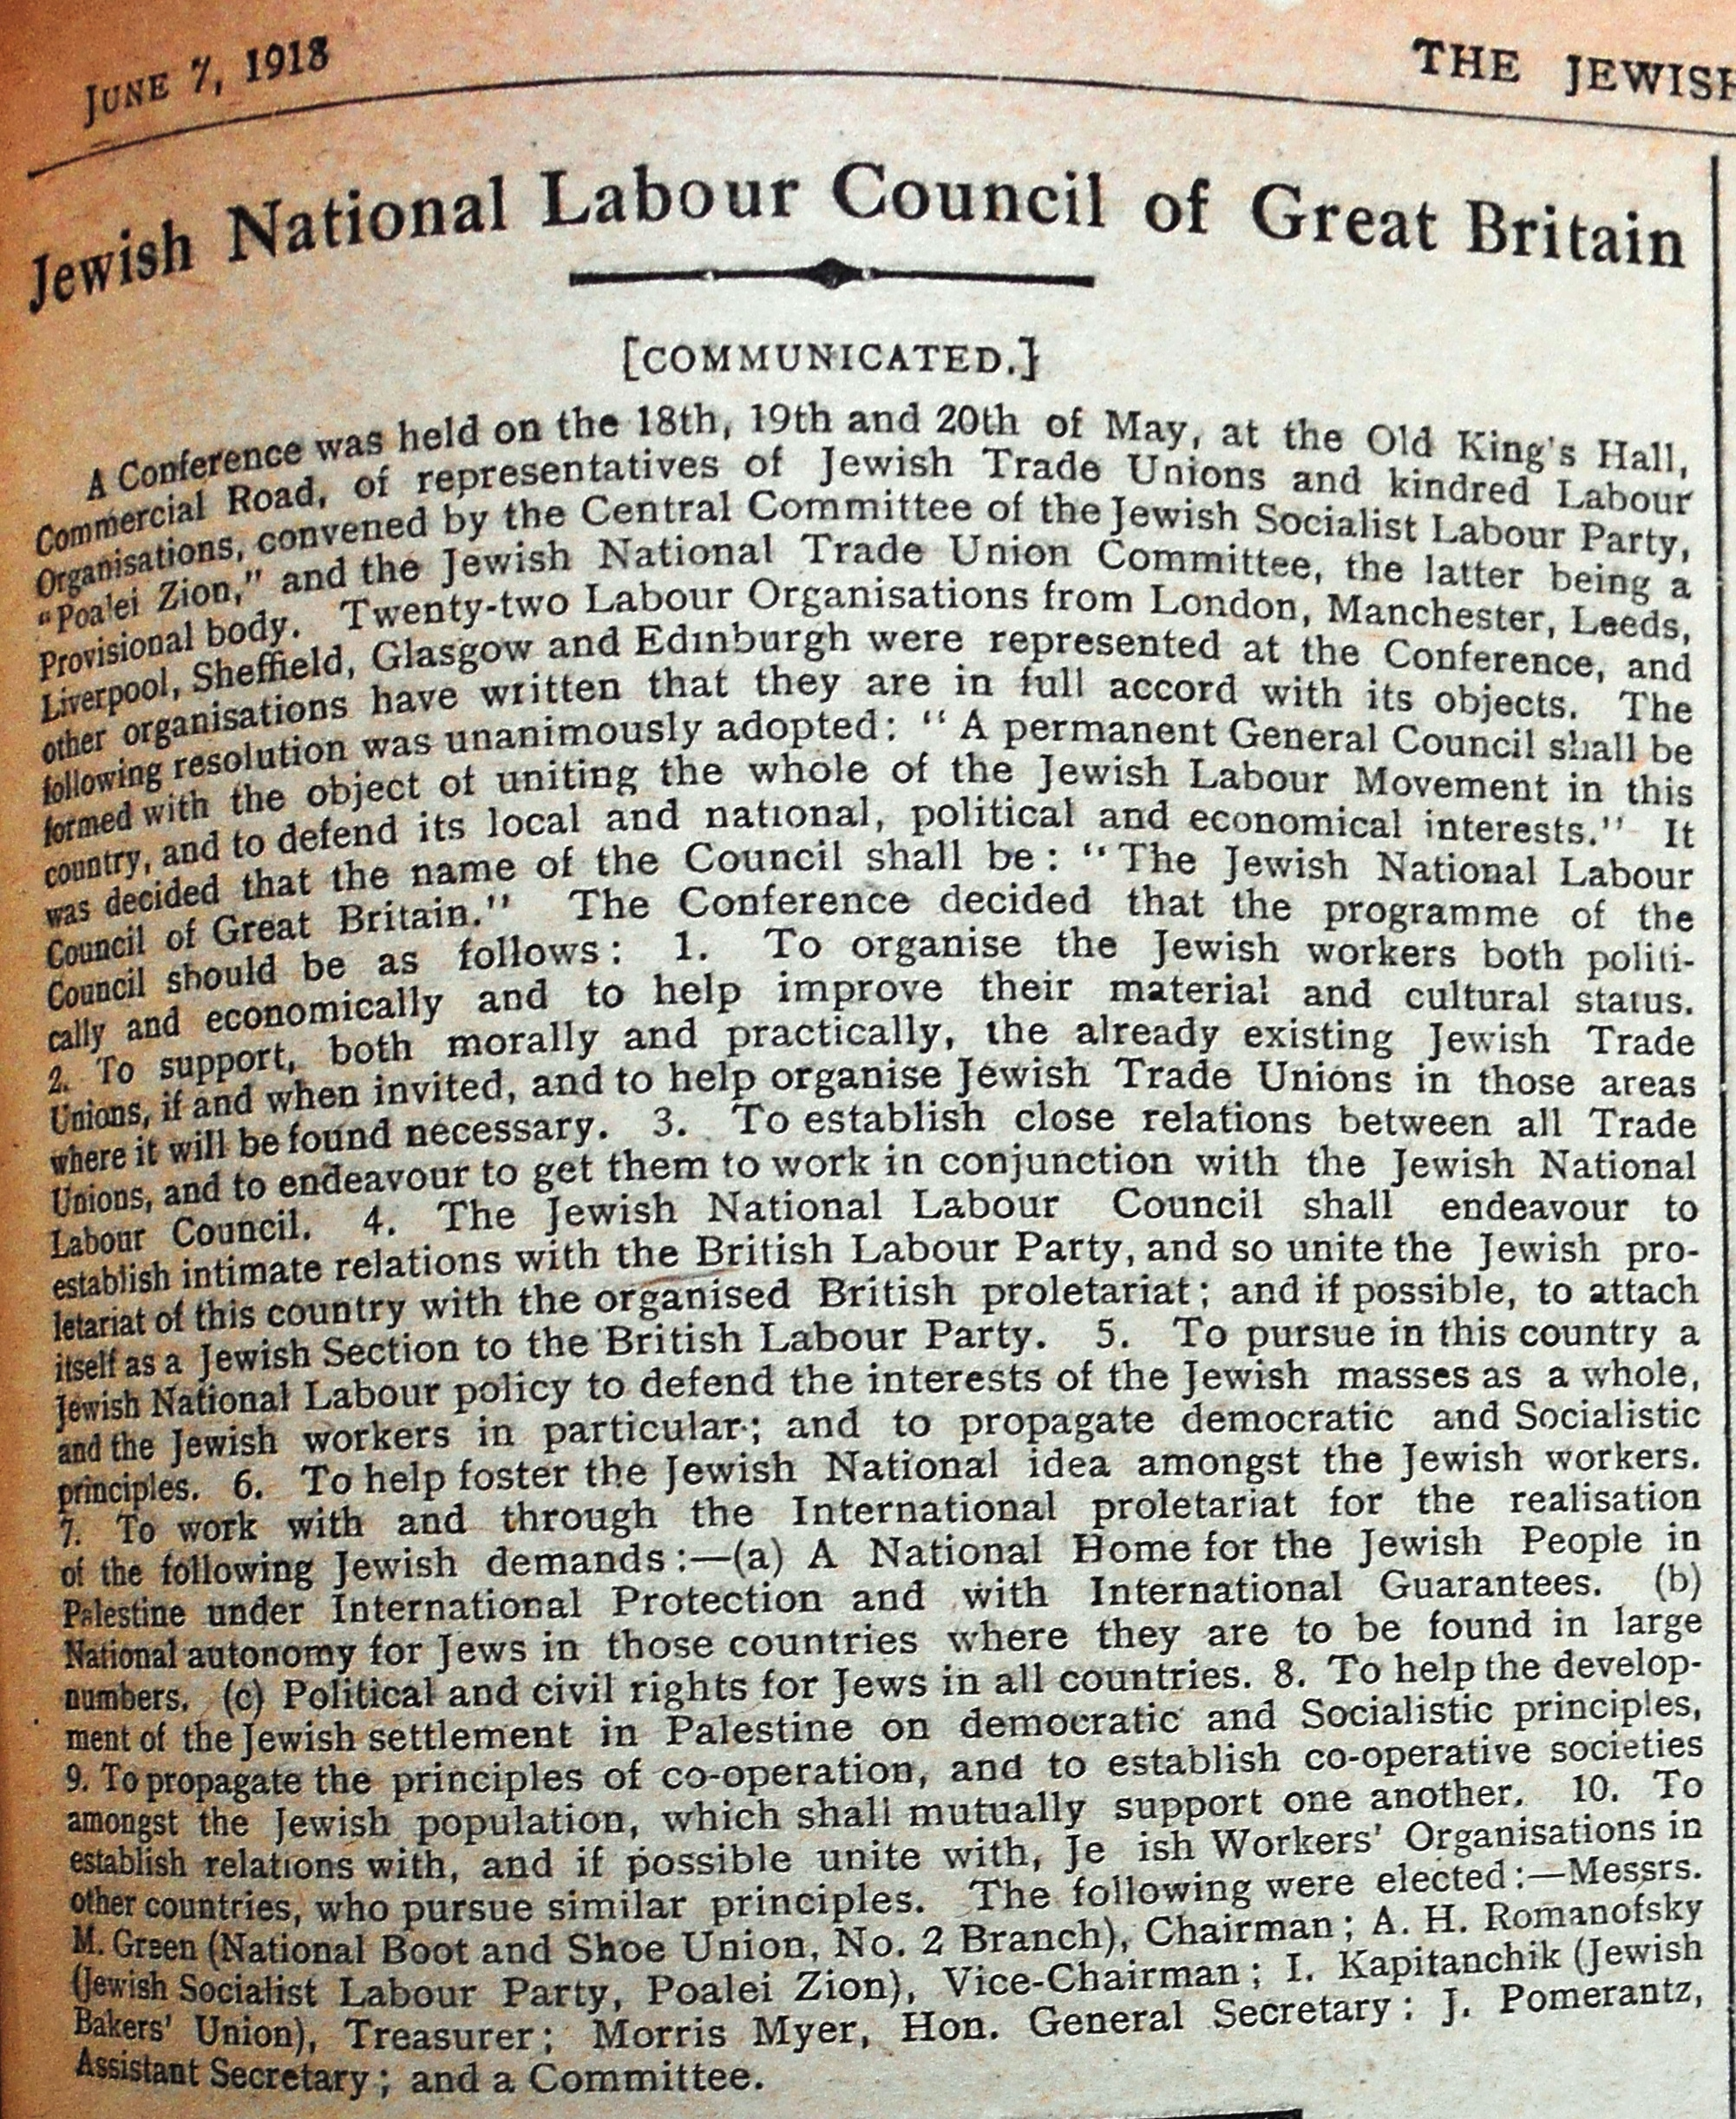 Jewish National Labour Council of Great Britain. Jewish Chronicle, 7 June 1918.